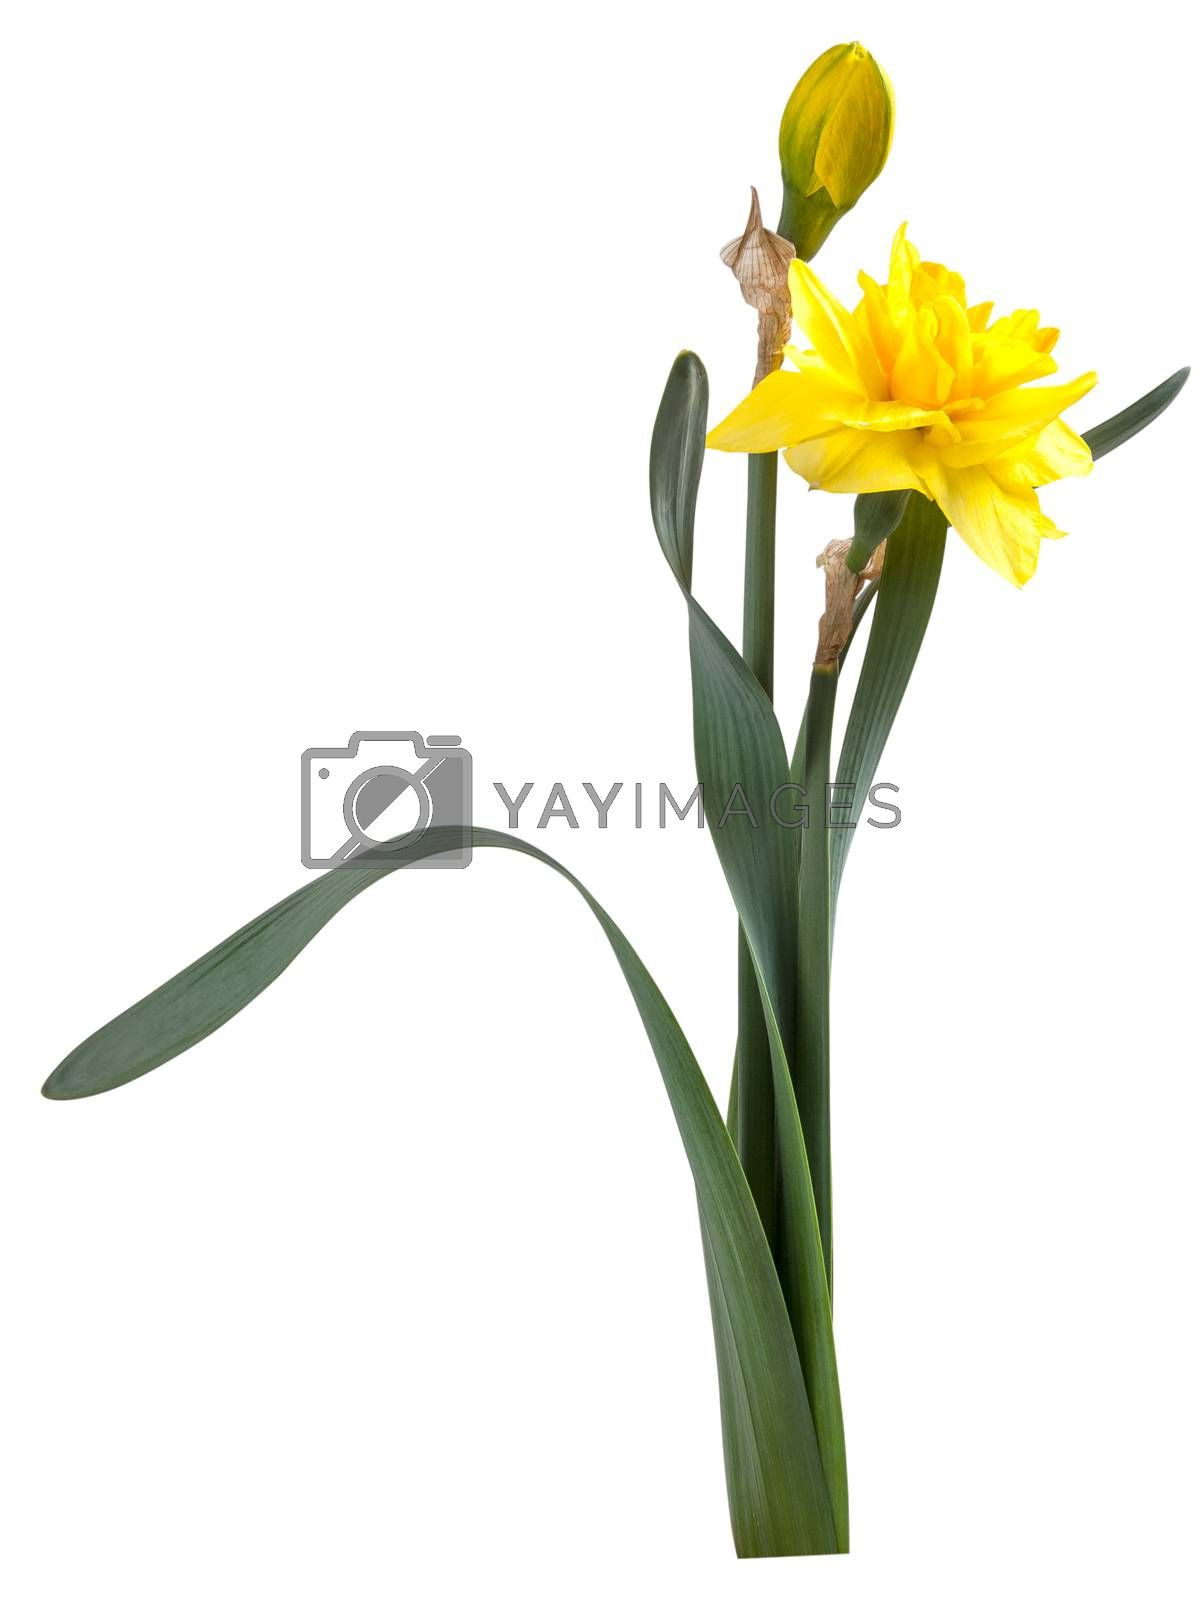 Beautiful narcissus flower with green leaves isolated on white background, for design